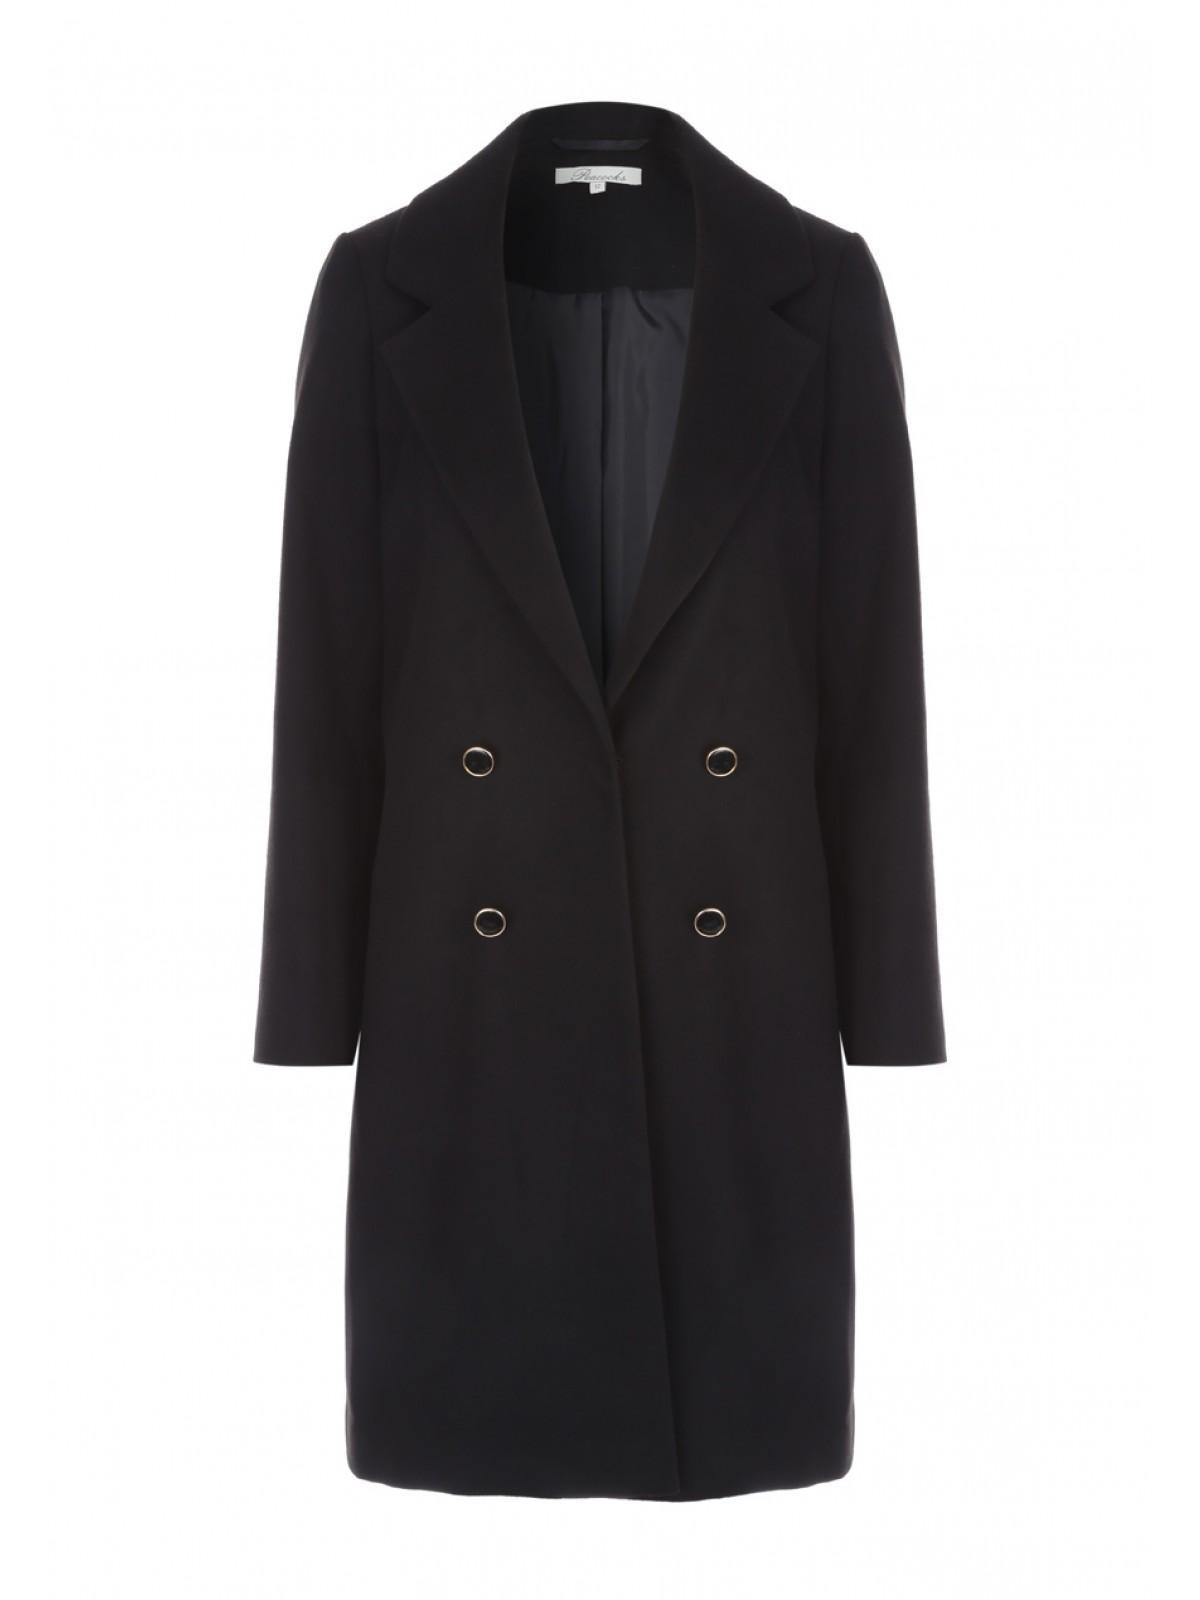 Black military coat uk